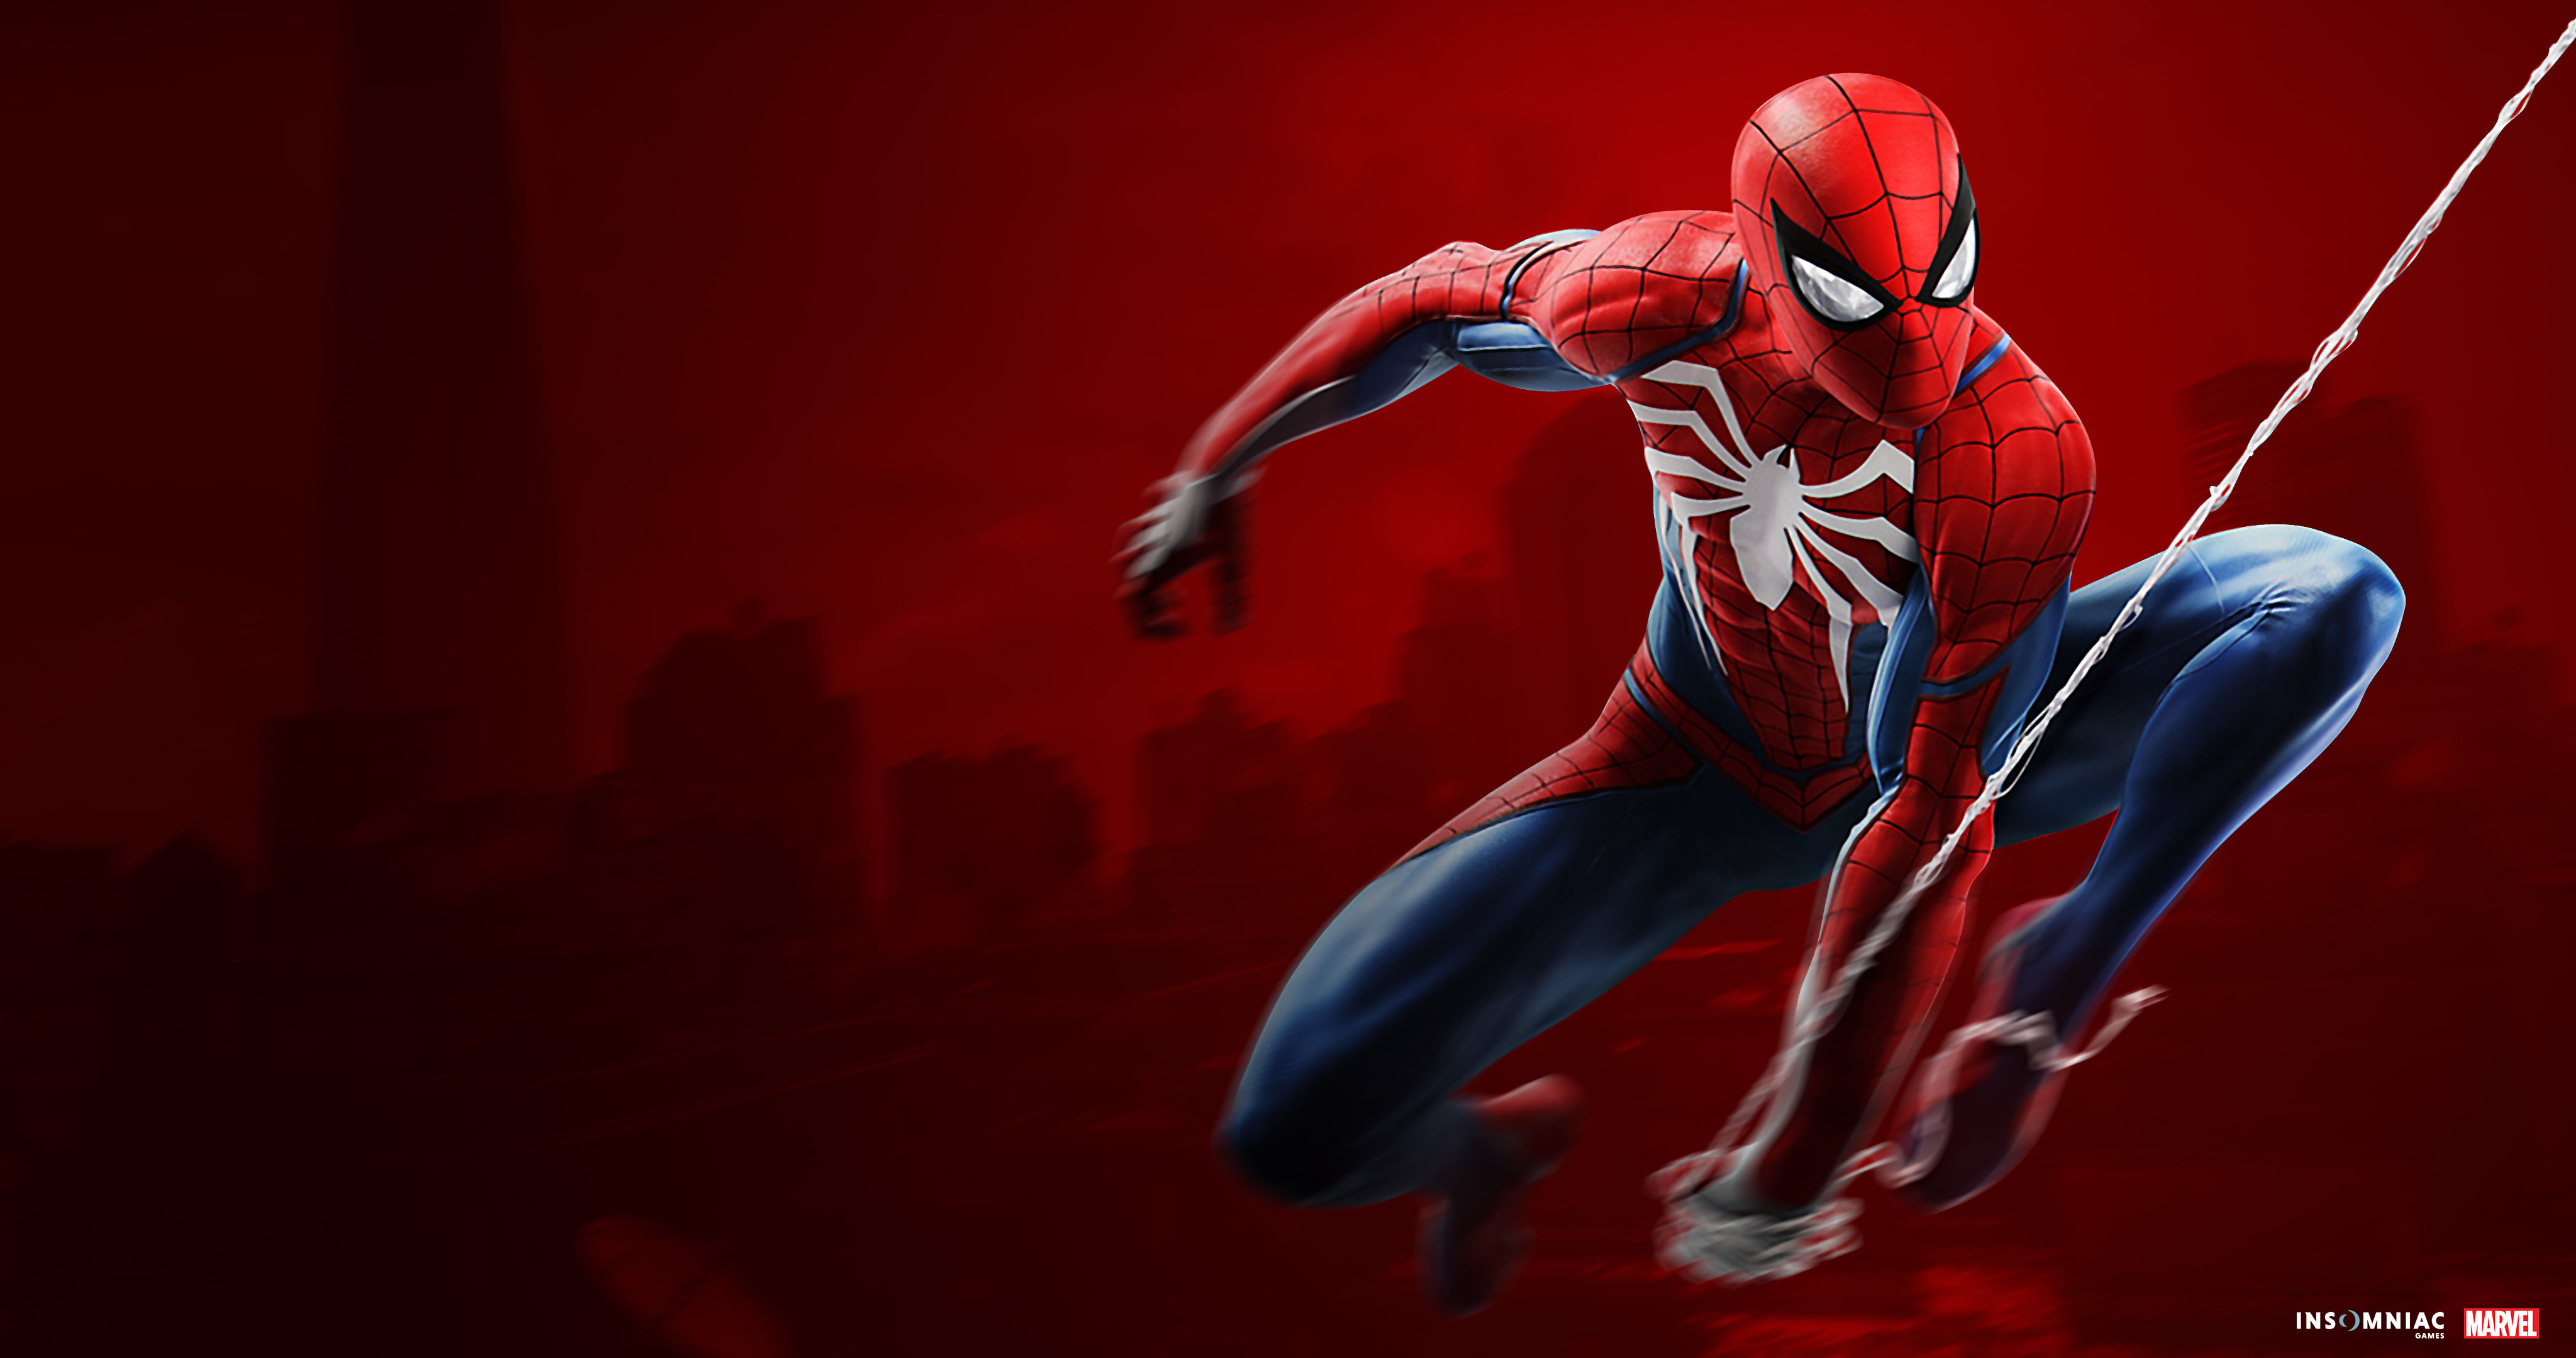 2048x1152 Spiderman Ps4 4k 2048x1152 Resolution Hd 4k Wallpapers Images Backgrounds Photos And Pictures